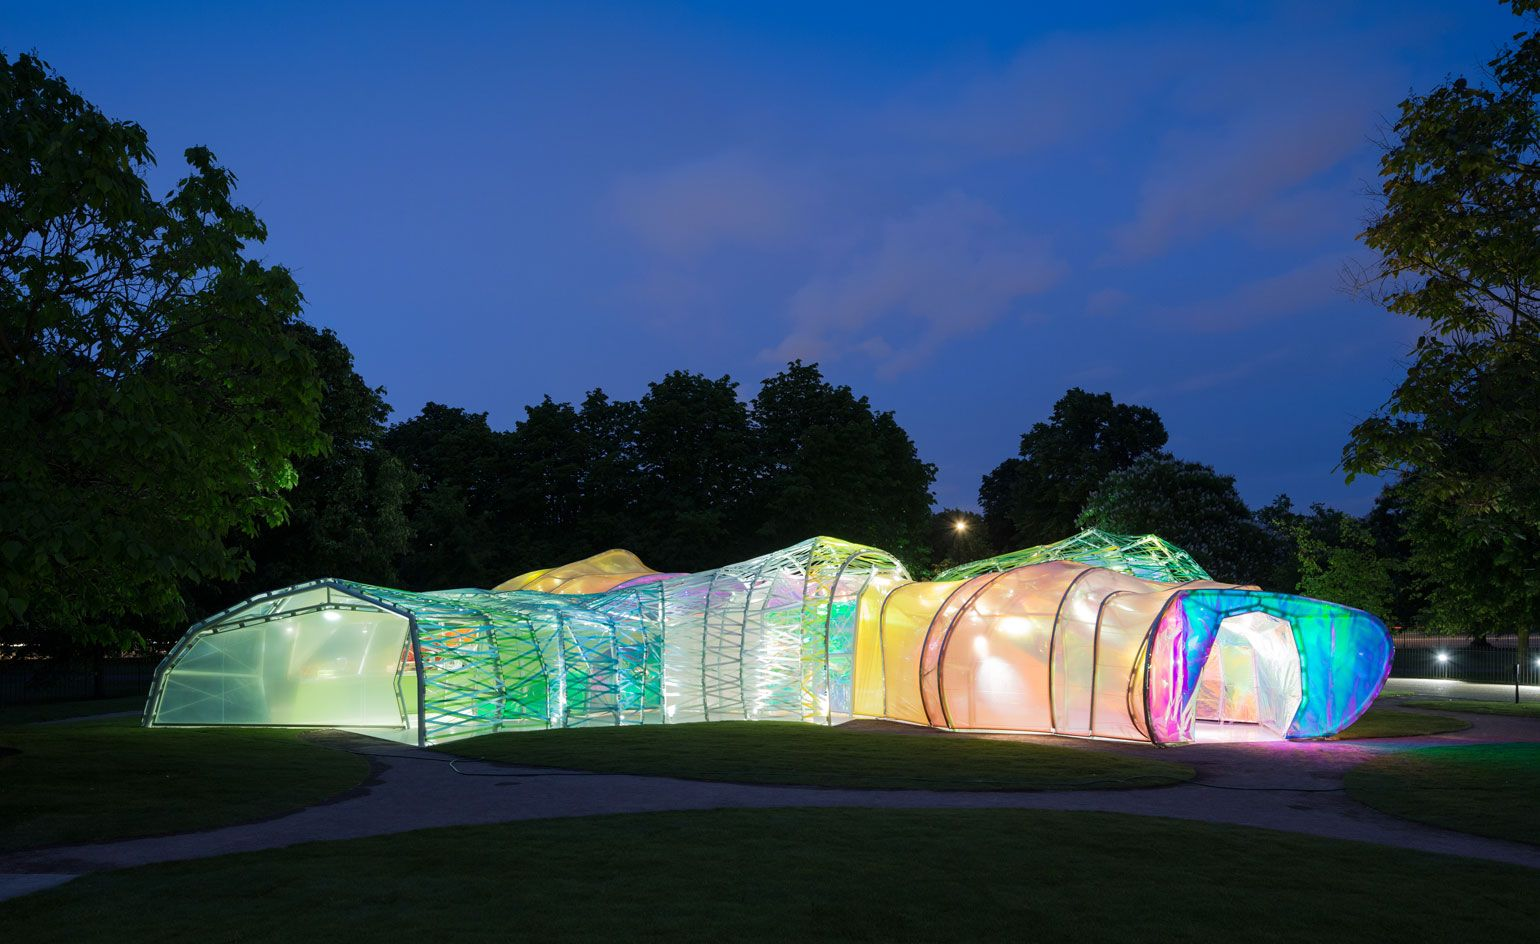 The structure's bright colours come alive at night, when lit from within